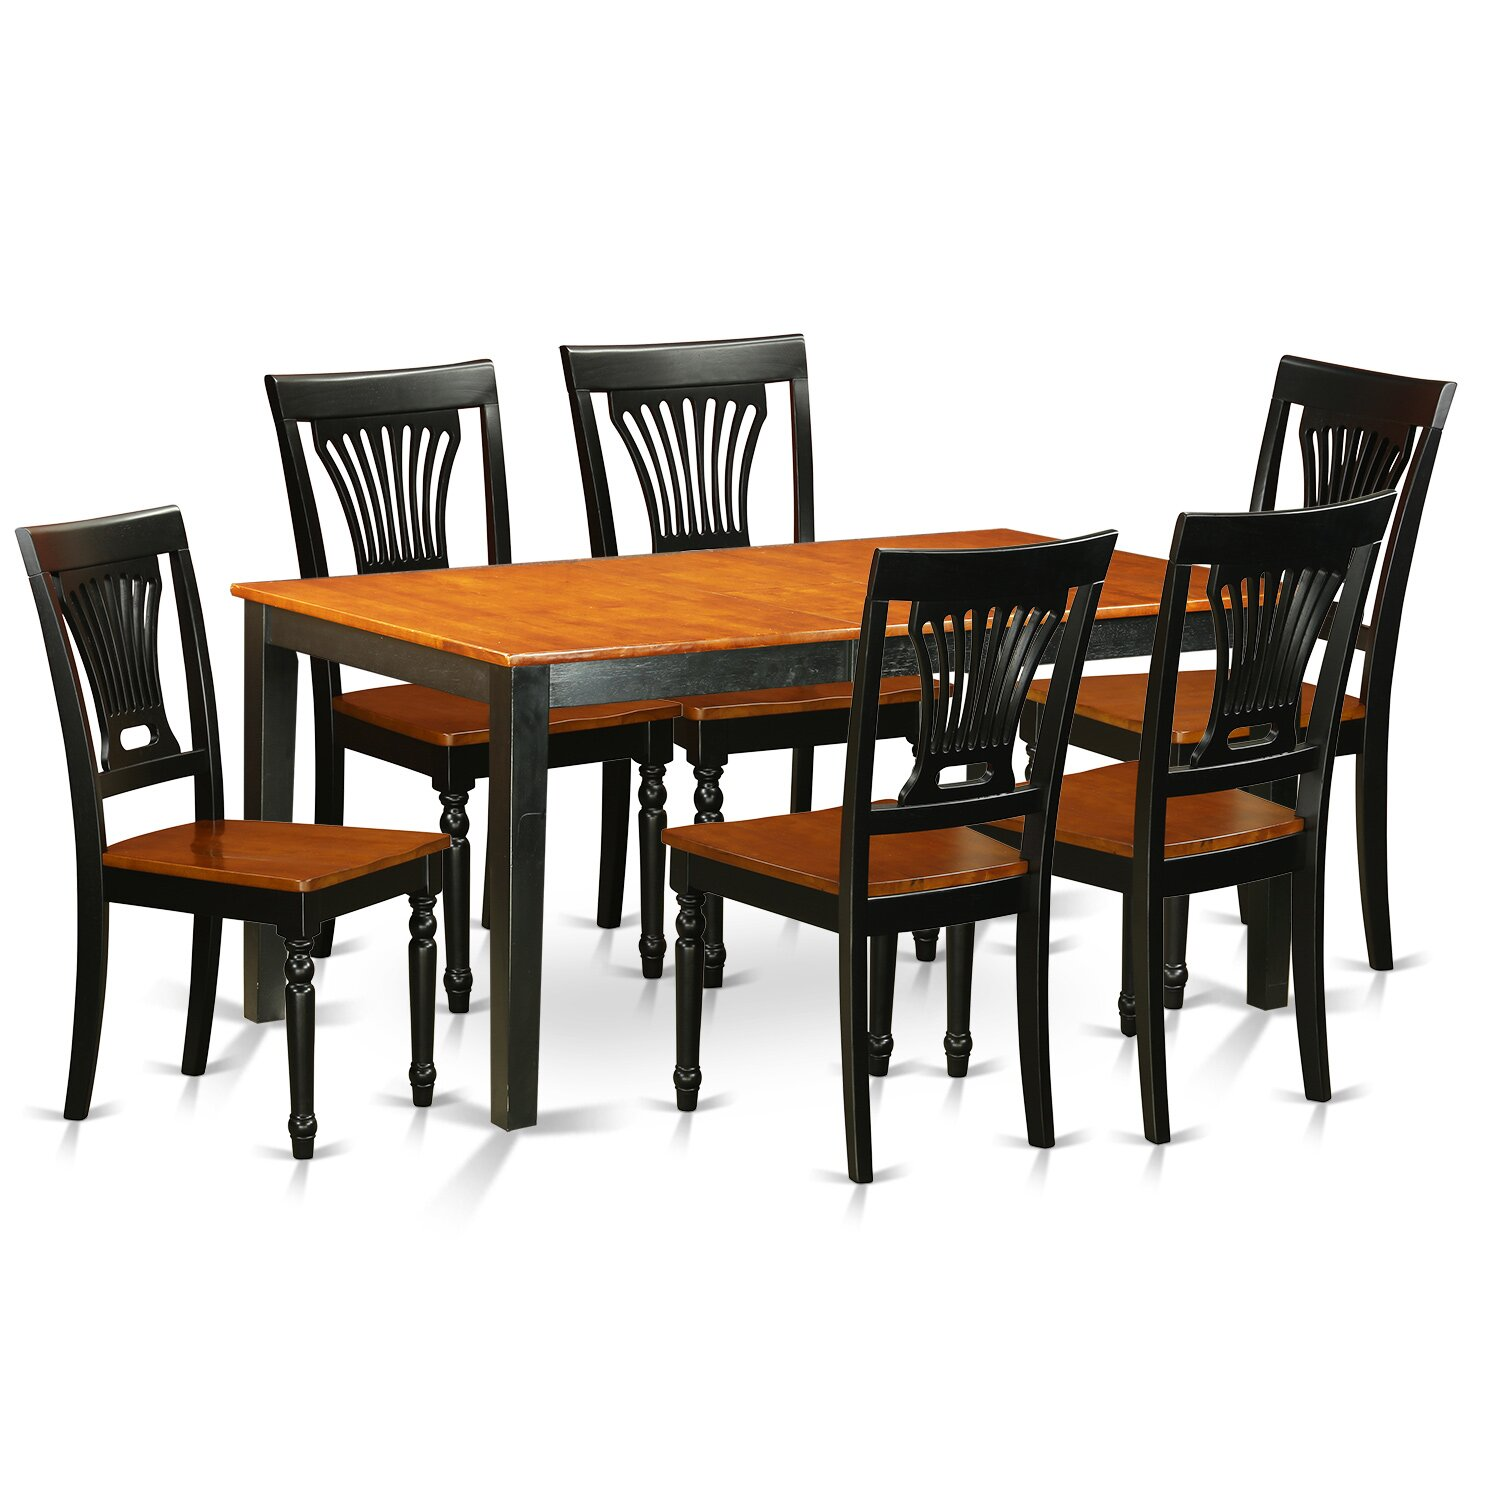 Solid Wood Kitchen Tables: East West Nicoli 7 Piece Dining Set